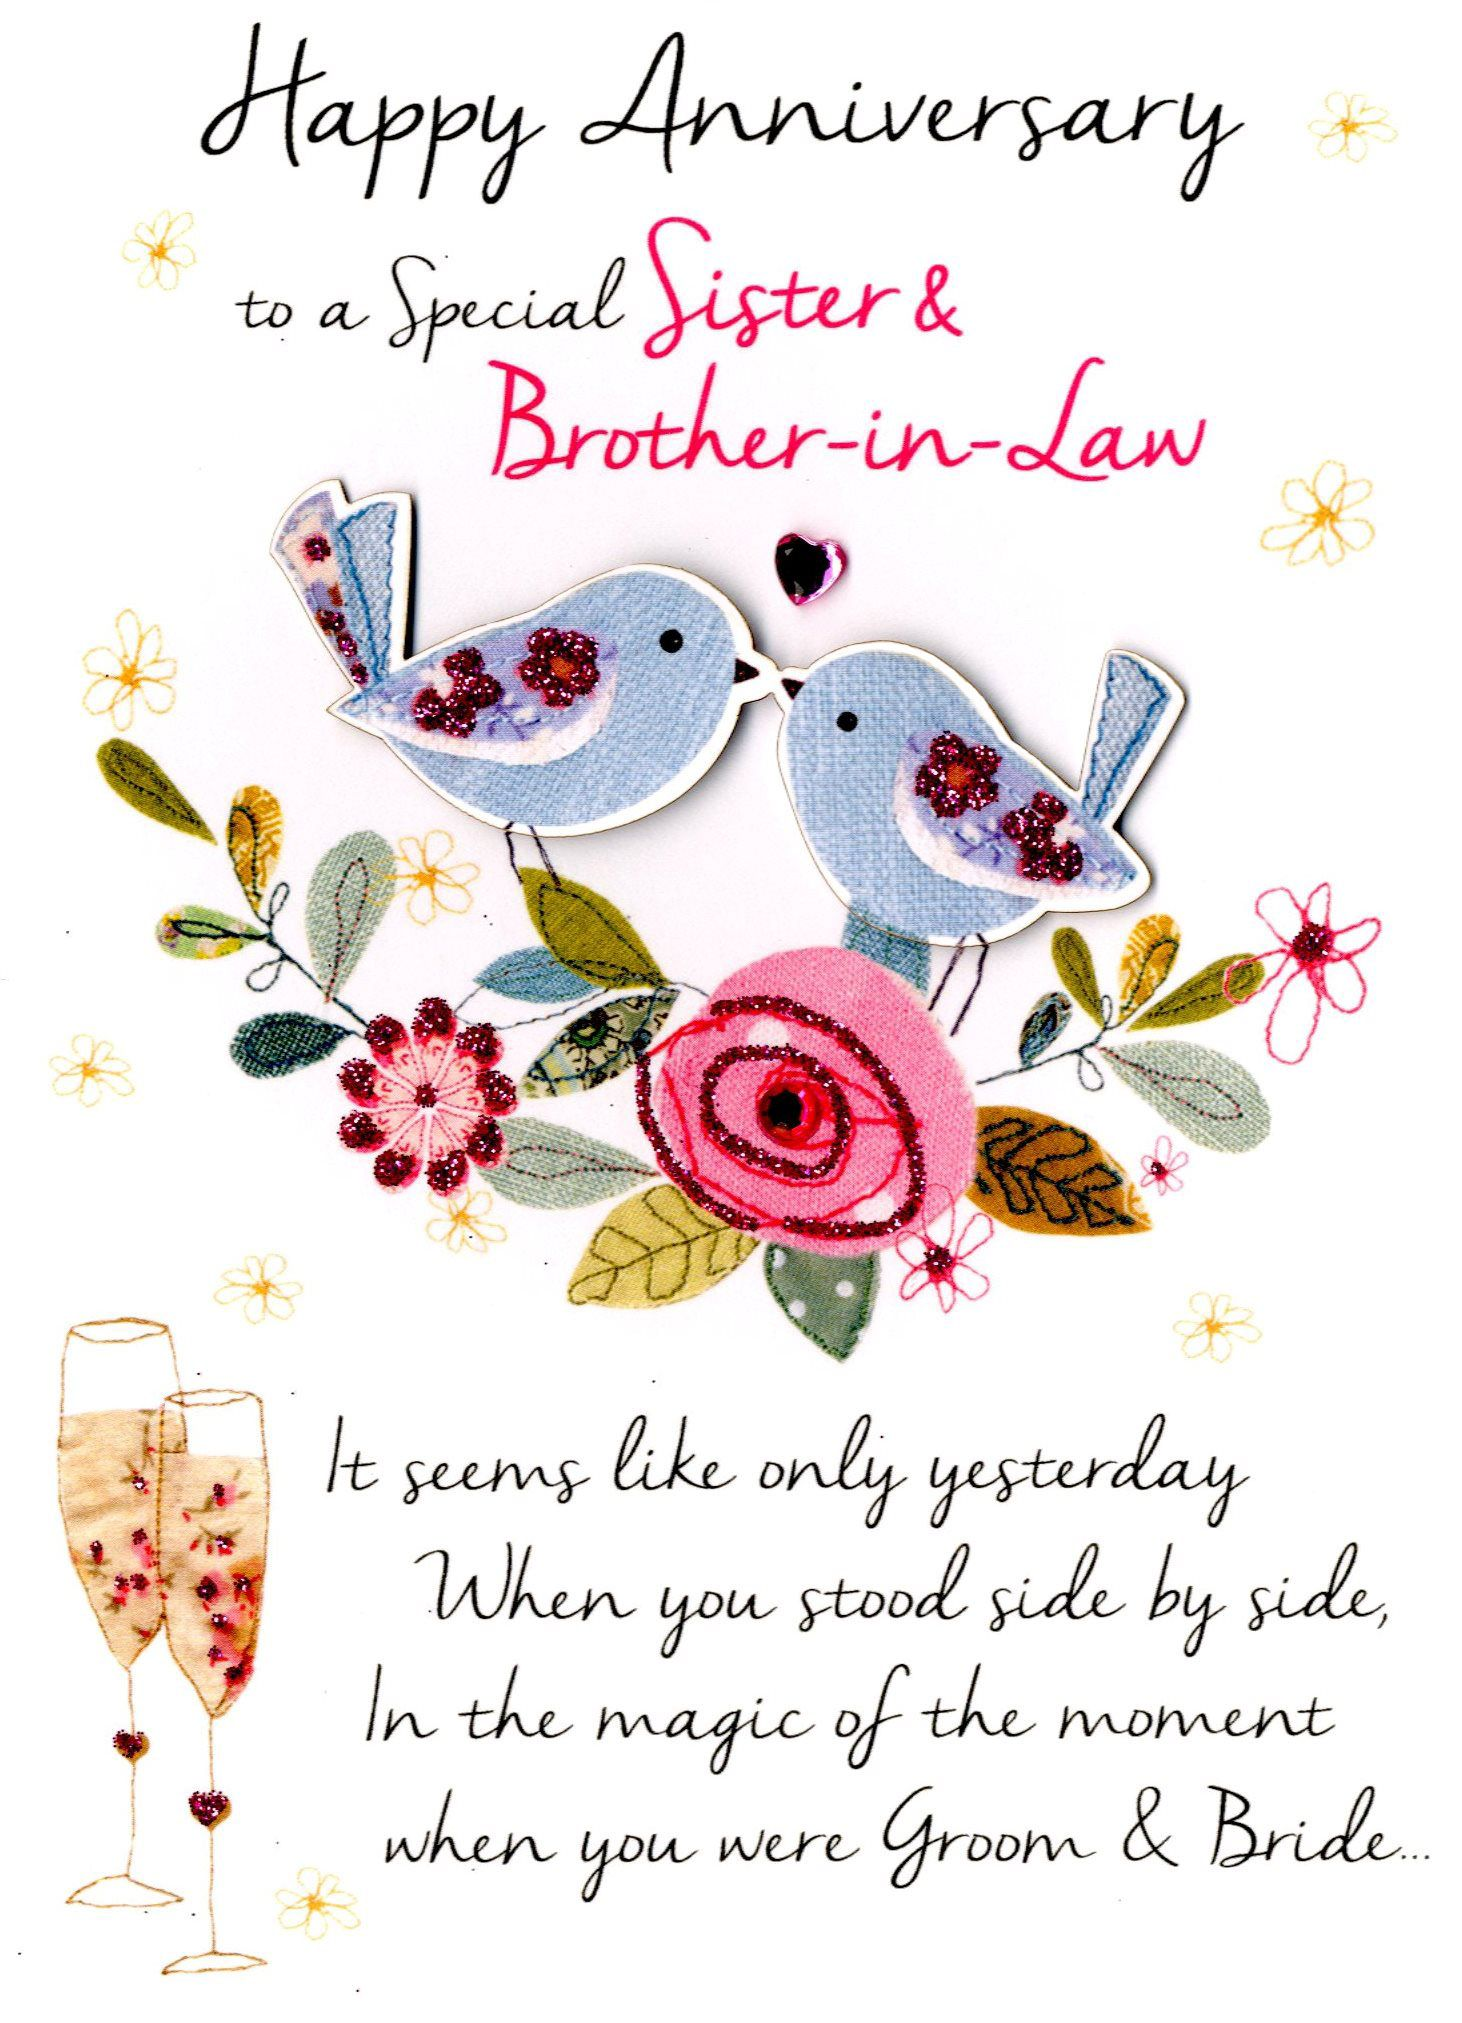 sister brother in law anniversary greeting card 2019